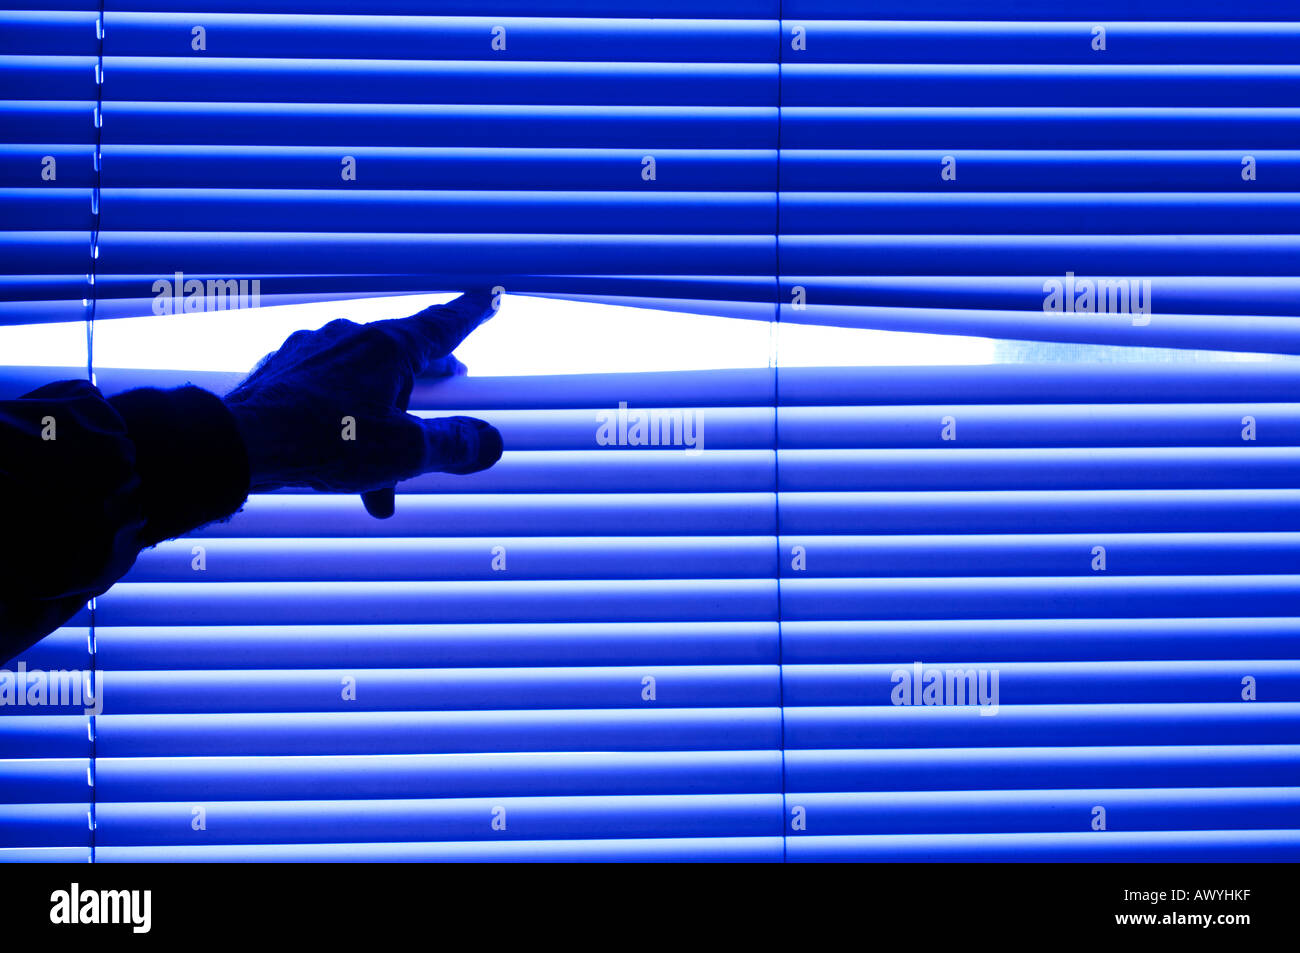 silhouette view of male hand reaching out to spread venetian blinds - Stock Image